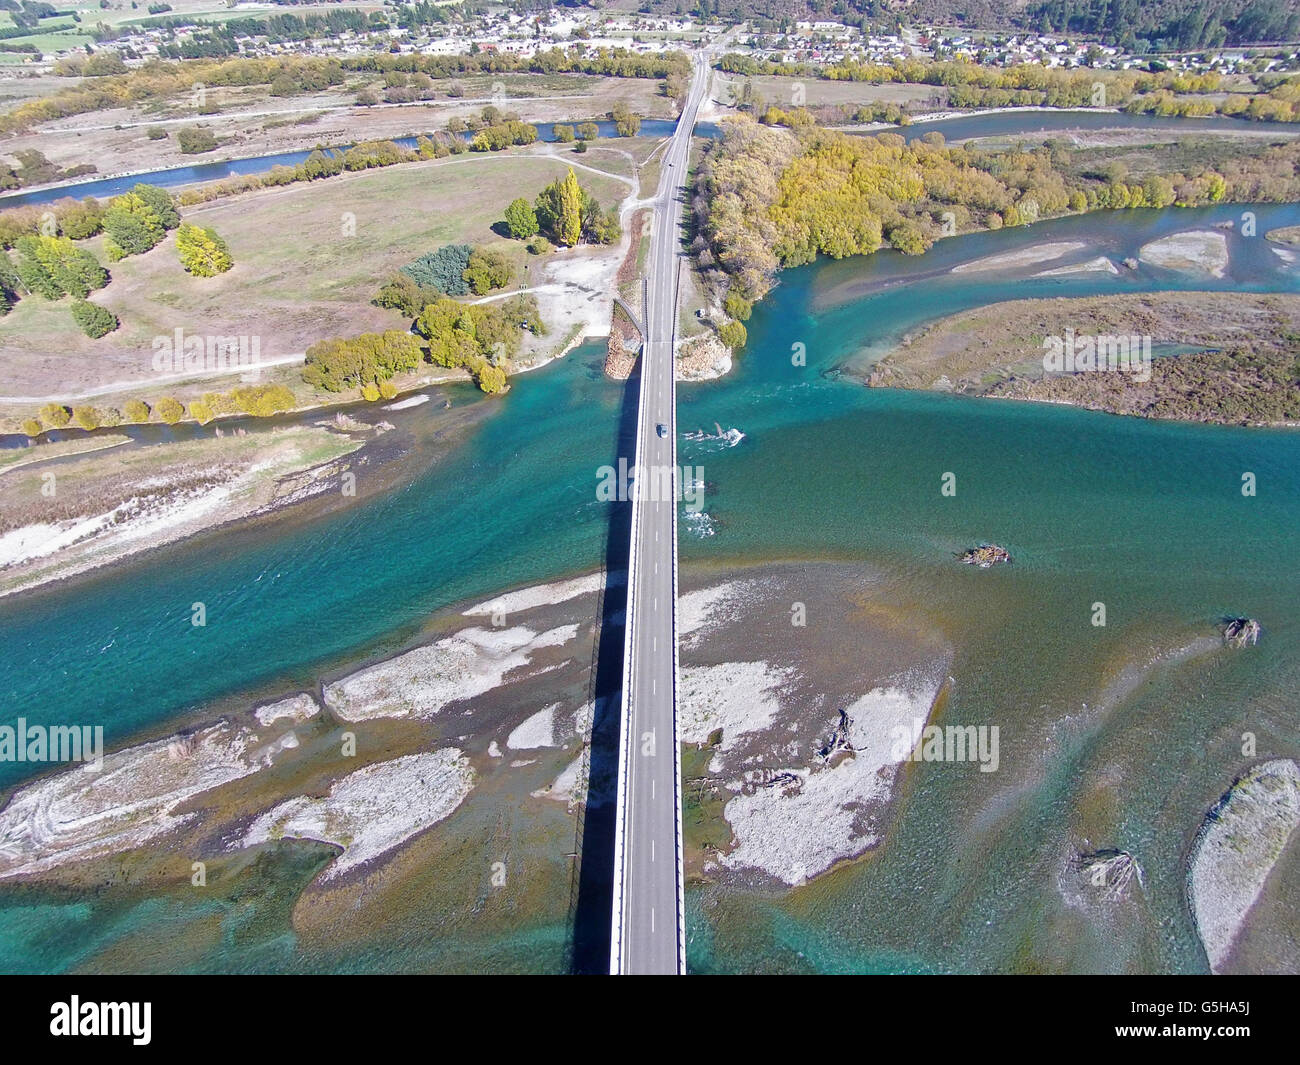 New Kurow Bridge over Waitaki River, Kurow, Waitaki Valley, North Otago, South Island, New Zealand - drone aerial - Stock Image